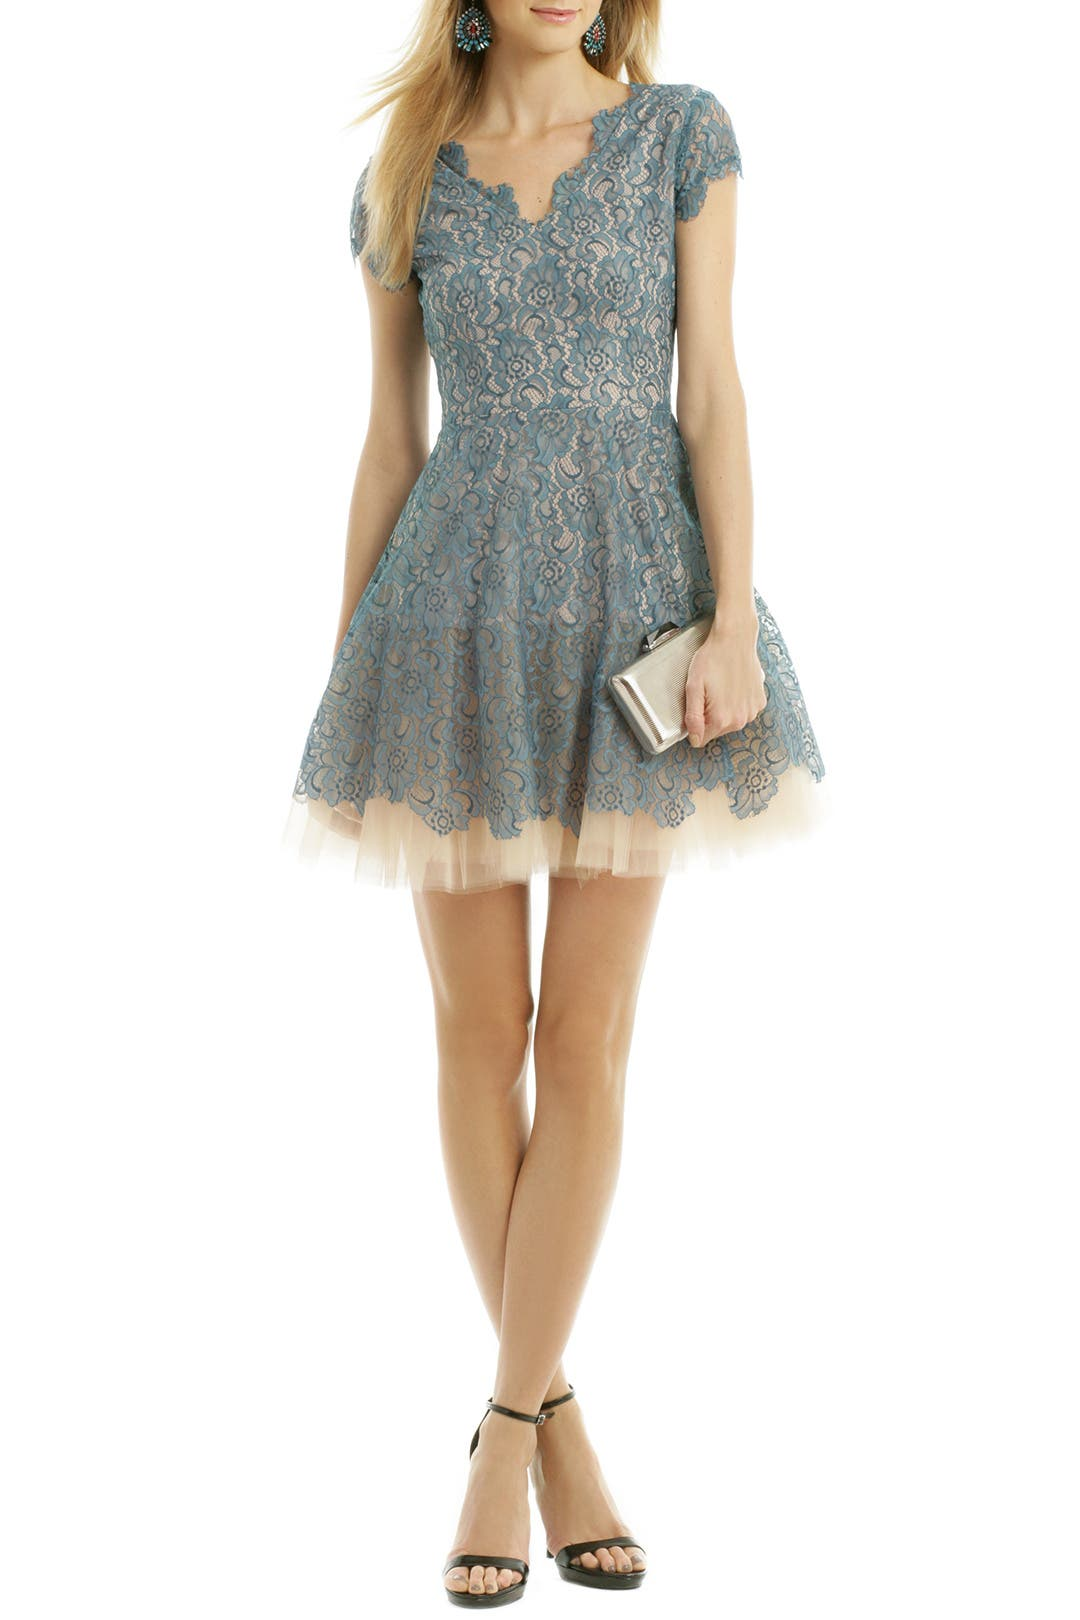 On Cloud Nine Dress By Nha Khanh For 65 80 Rent The